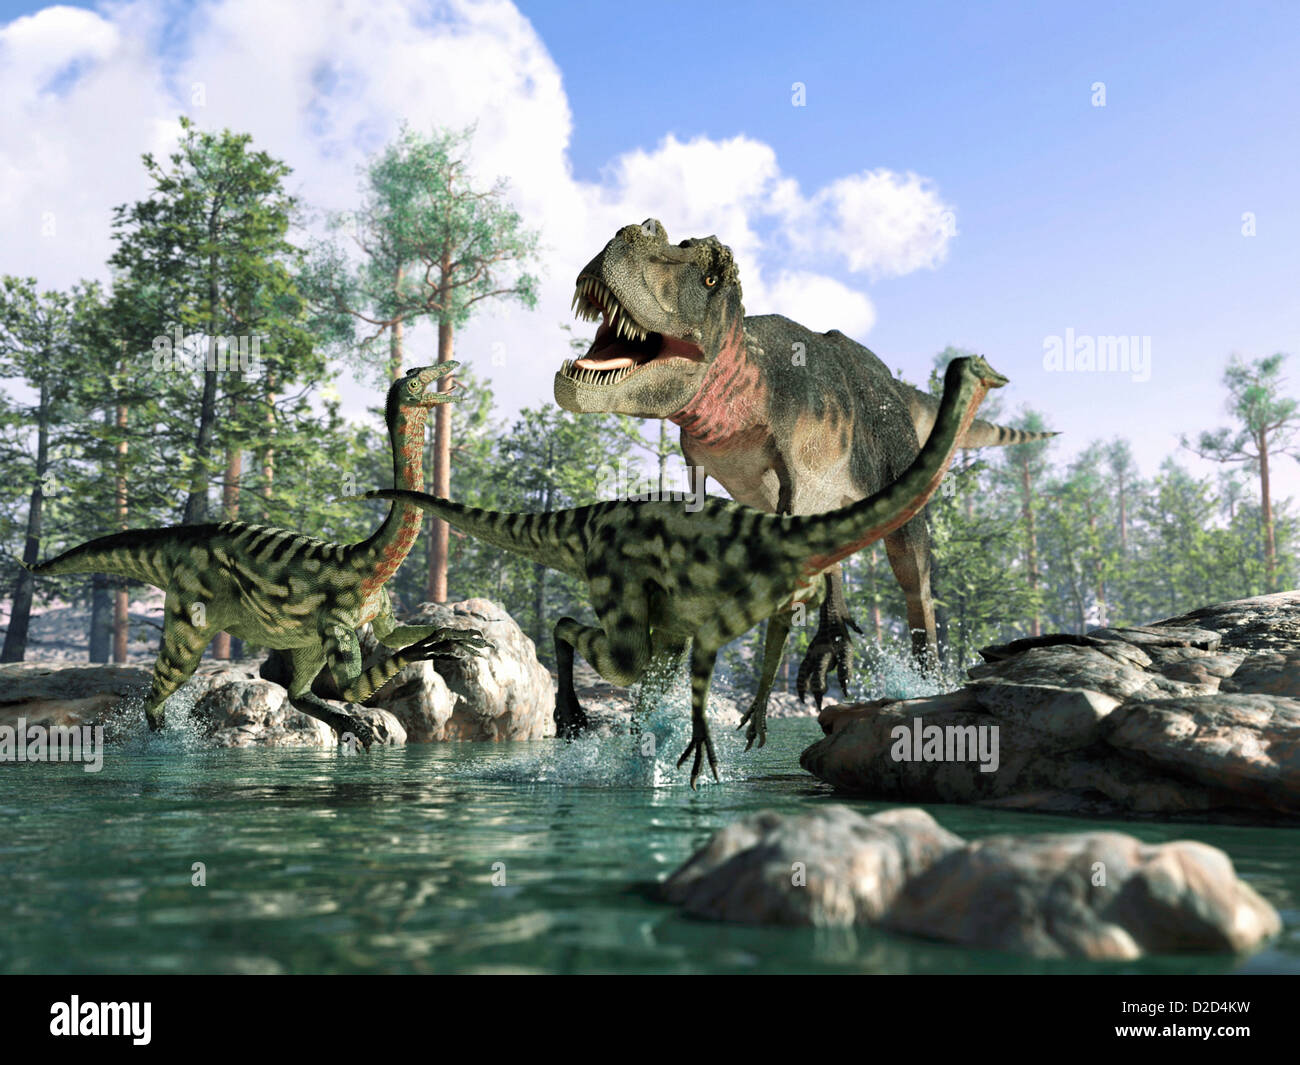 Dinosaur Habitat Stock Photos Dinosaur Habitat Stock Images Alamy